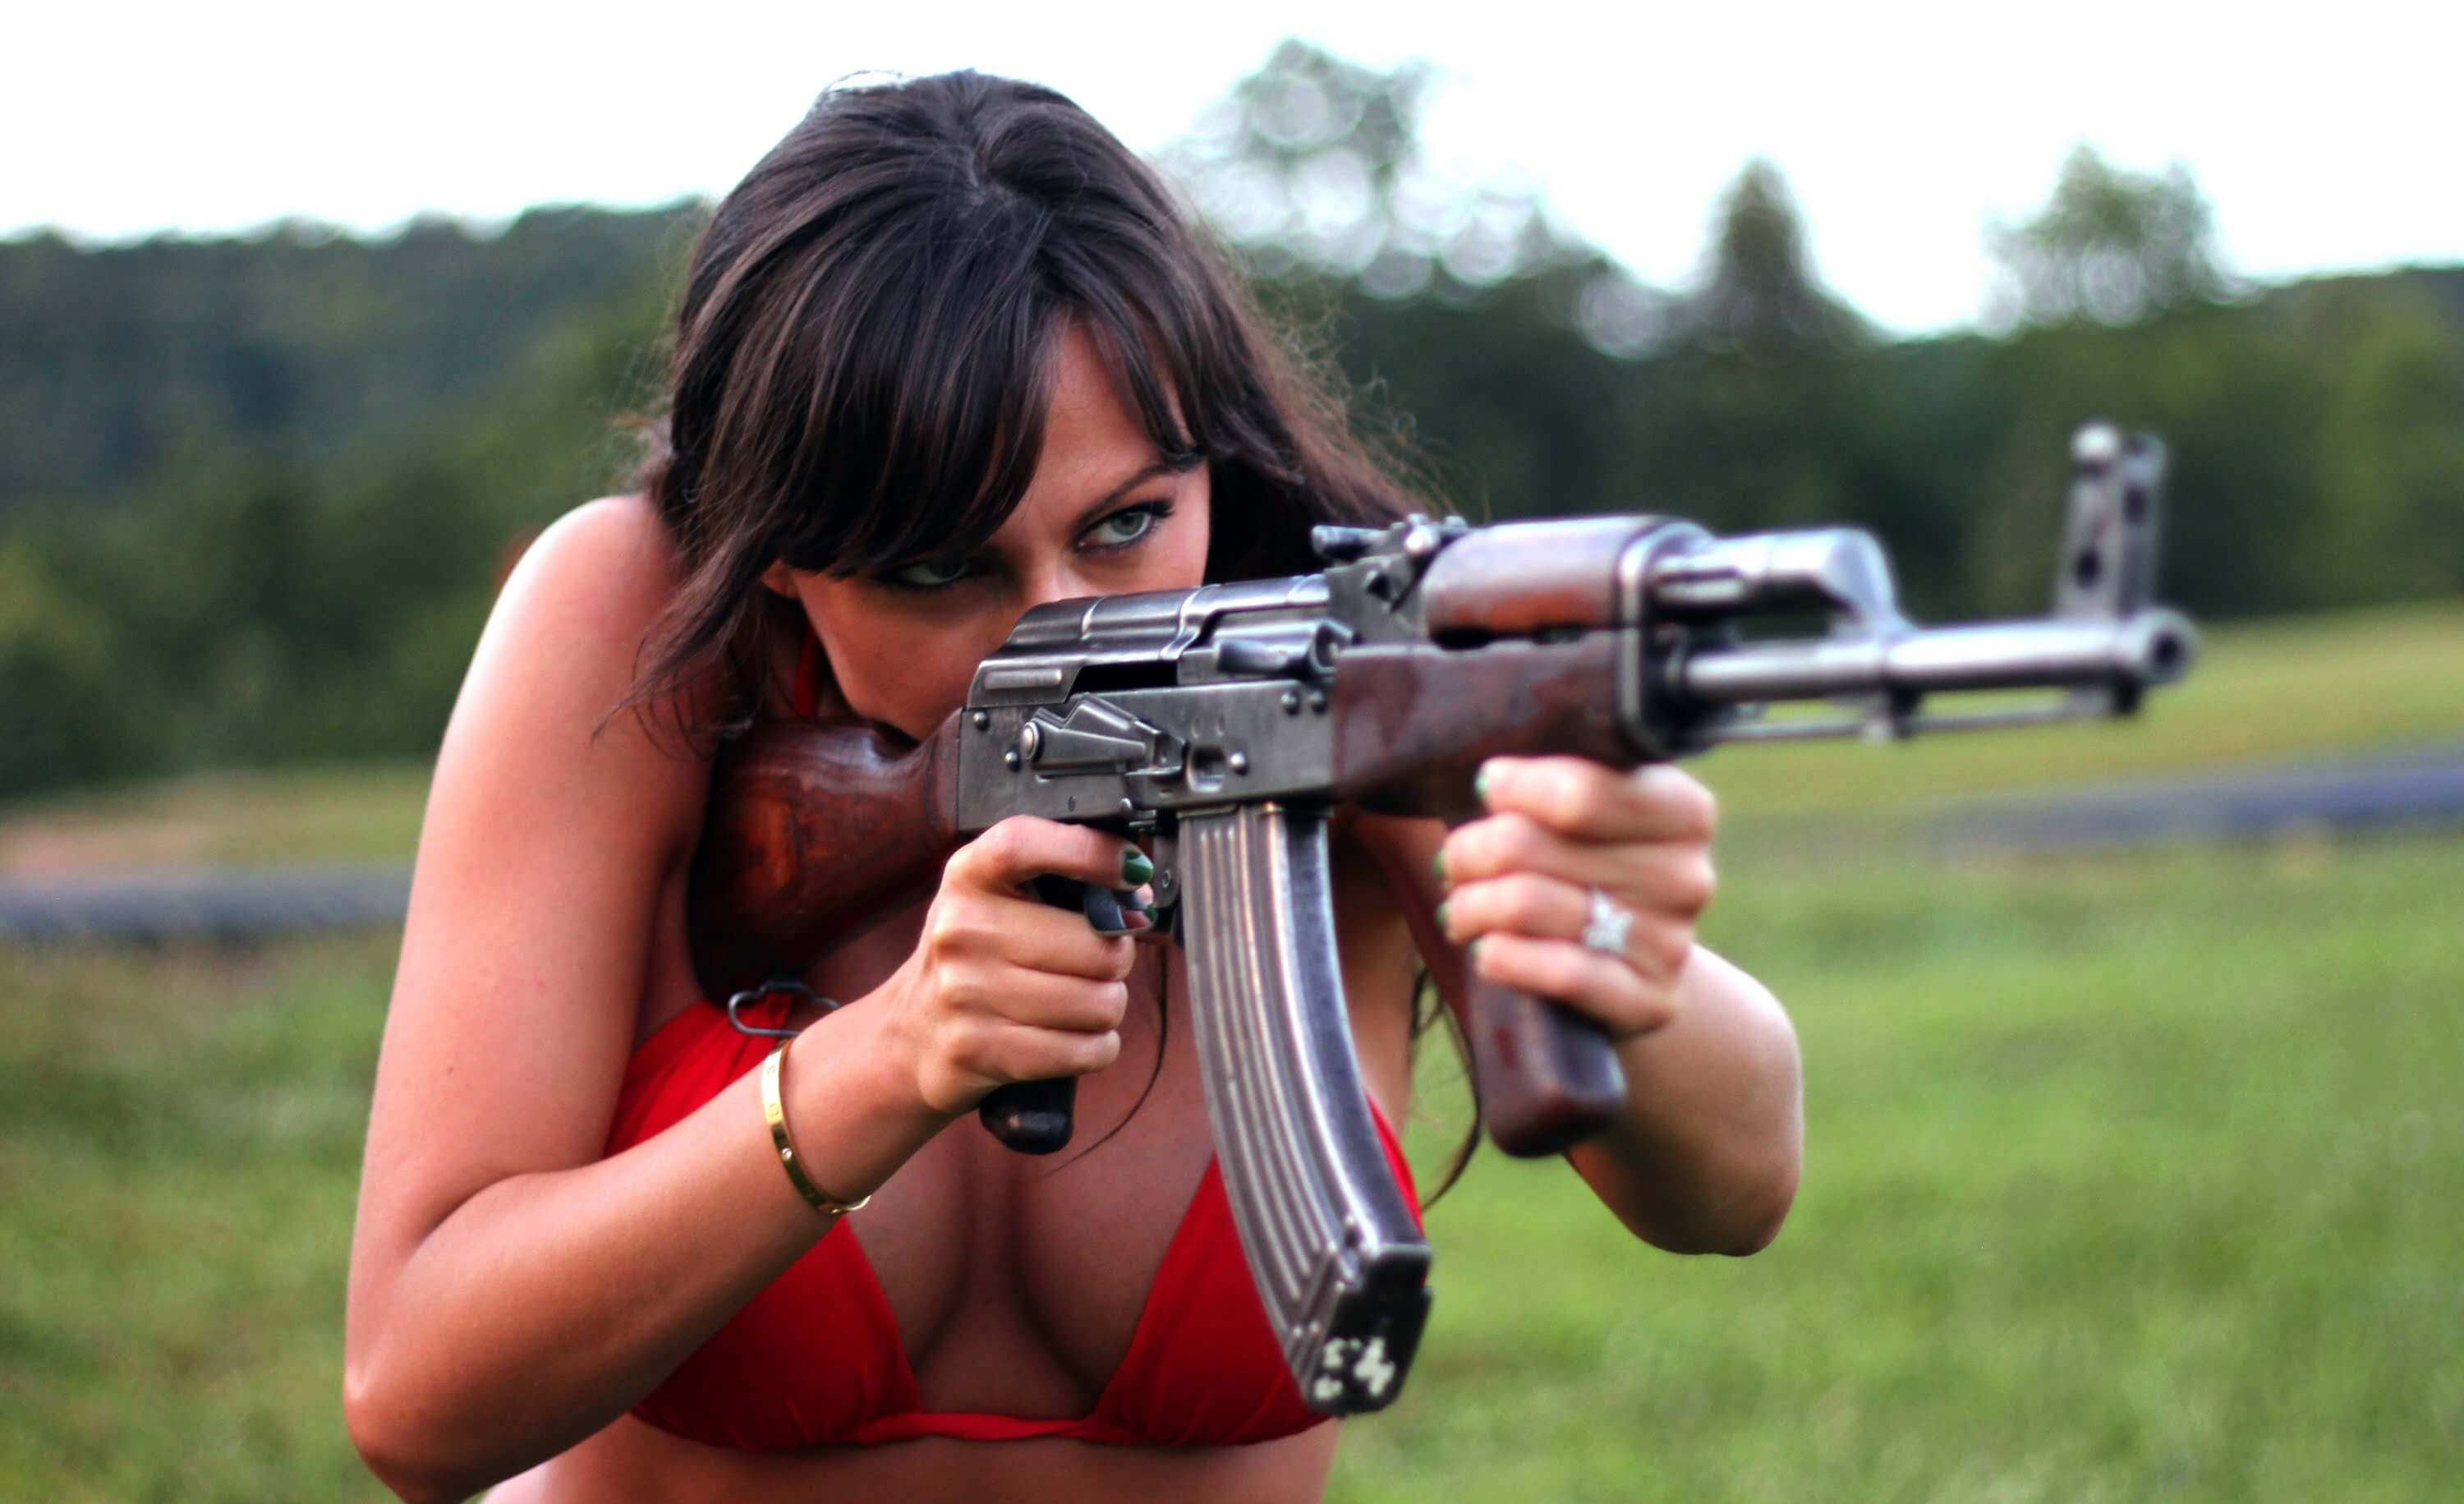 chicks-with-guns-11